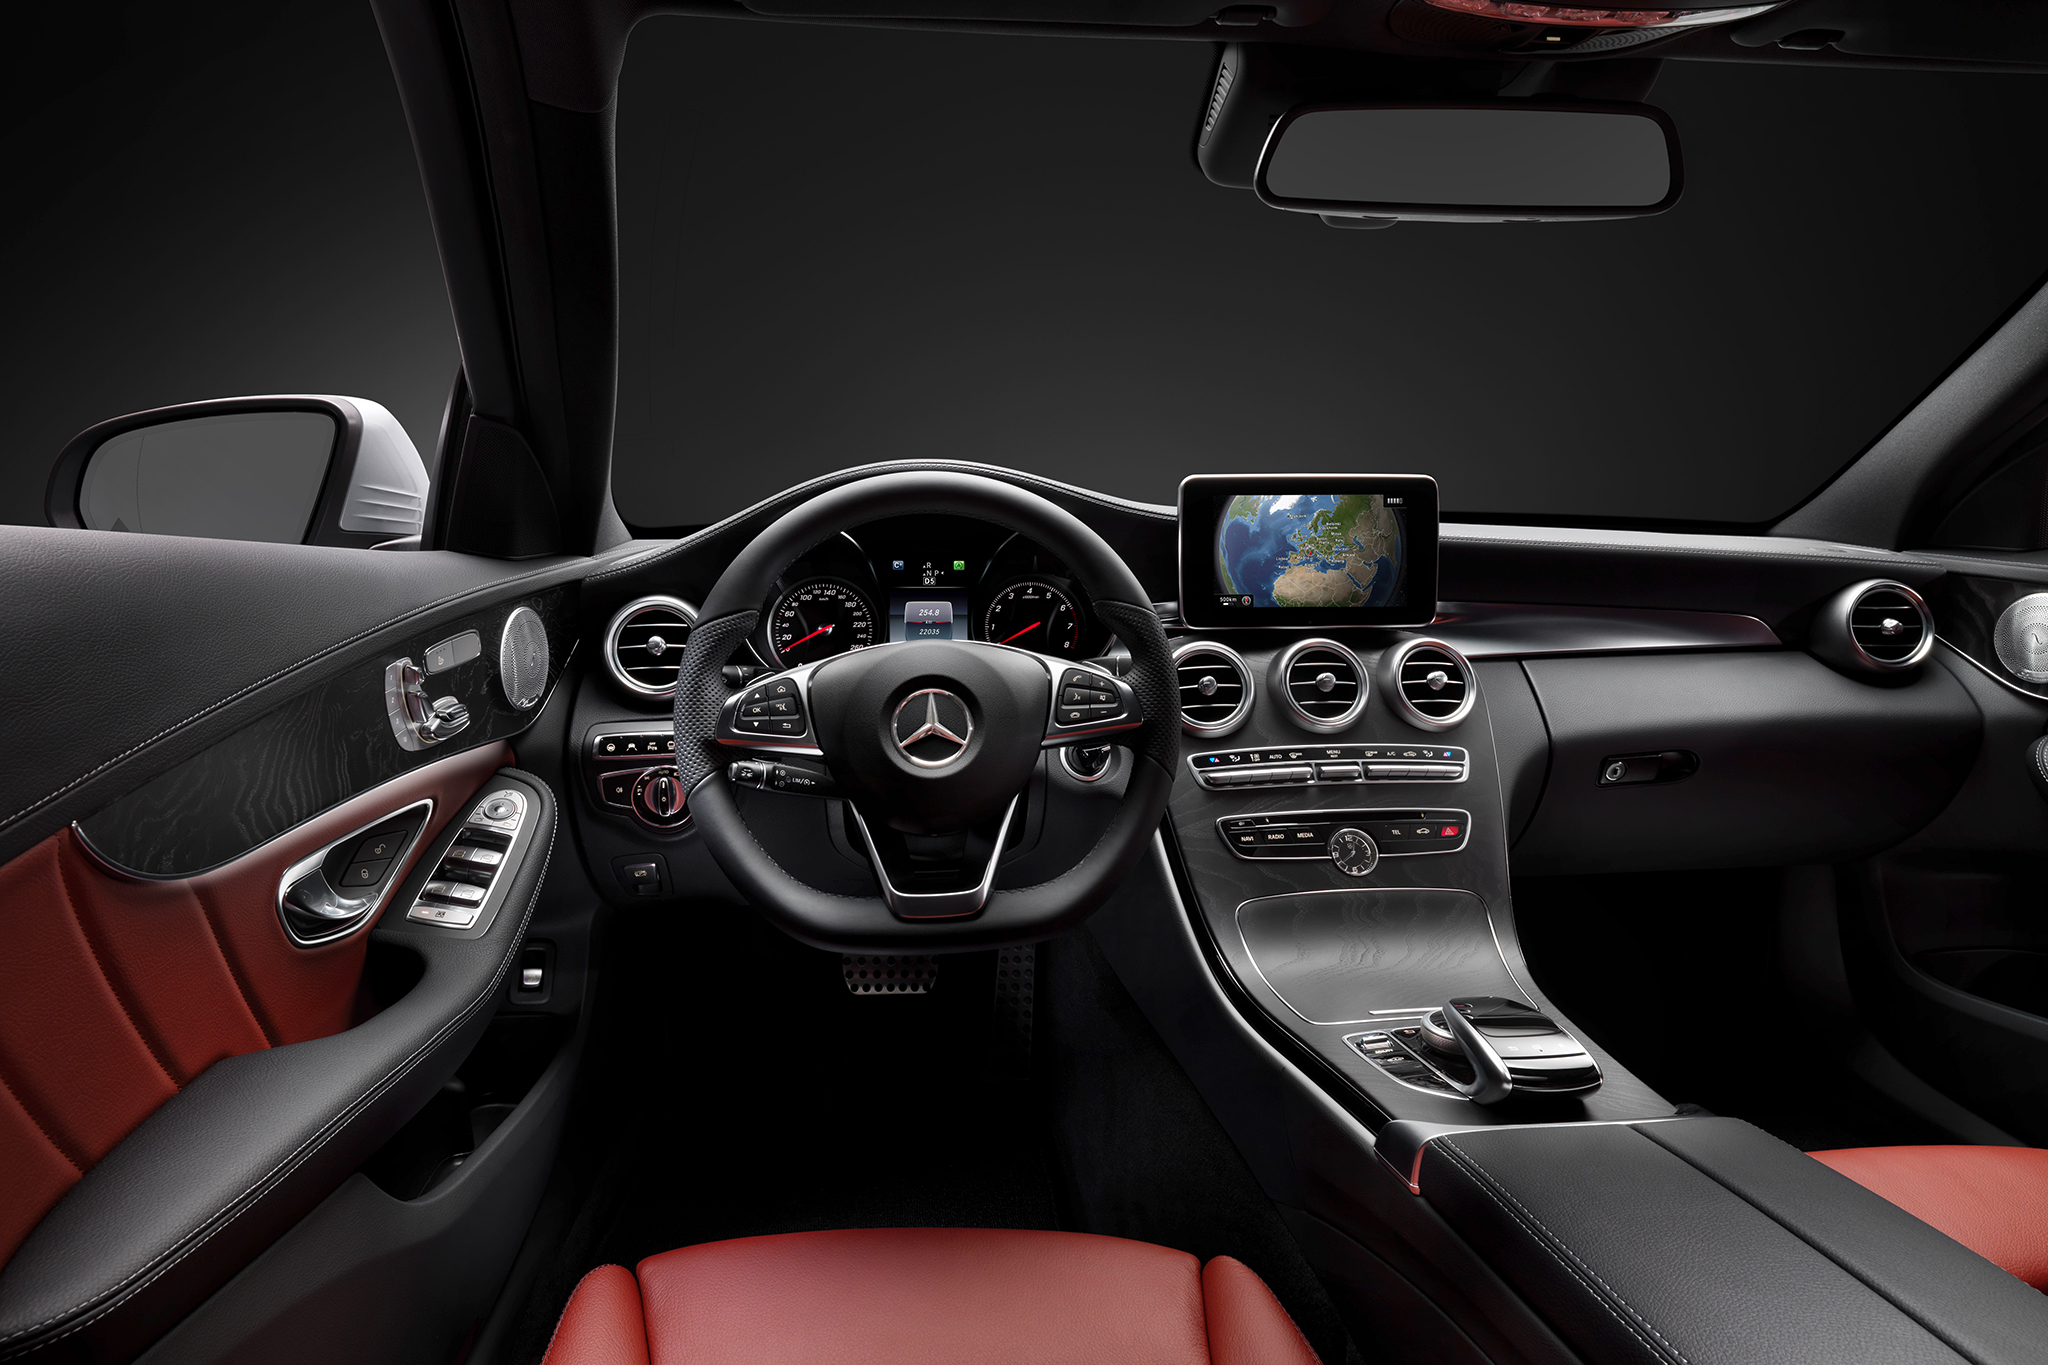 2015 Mercedes-Benz C-Class Cockpit and Speedometer